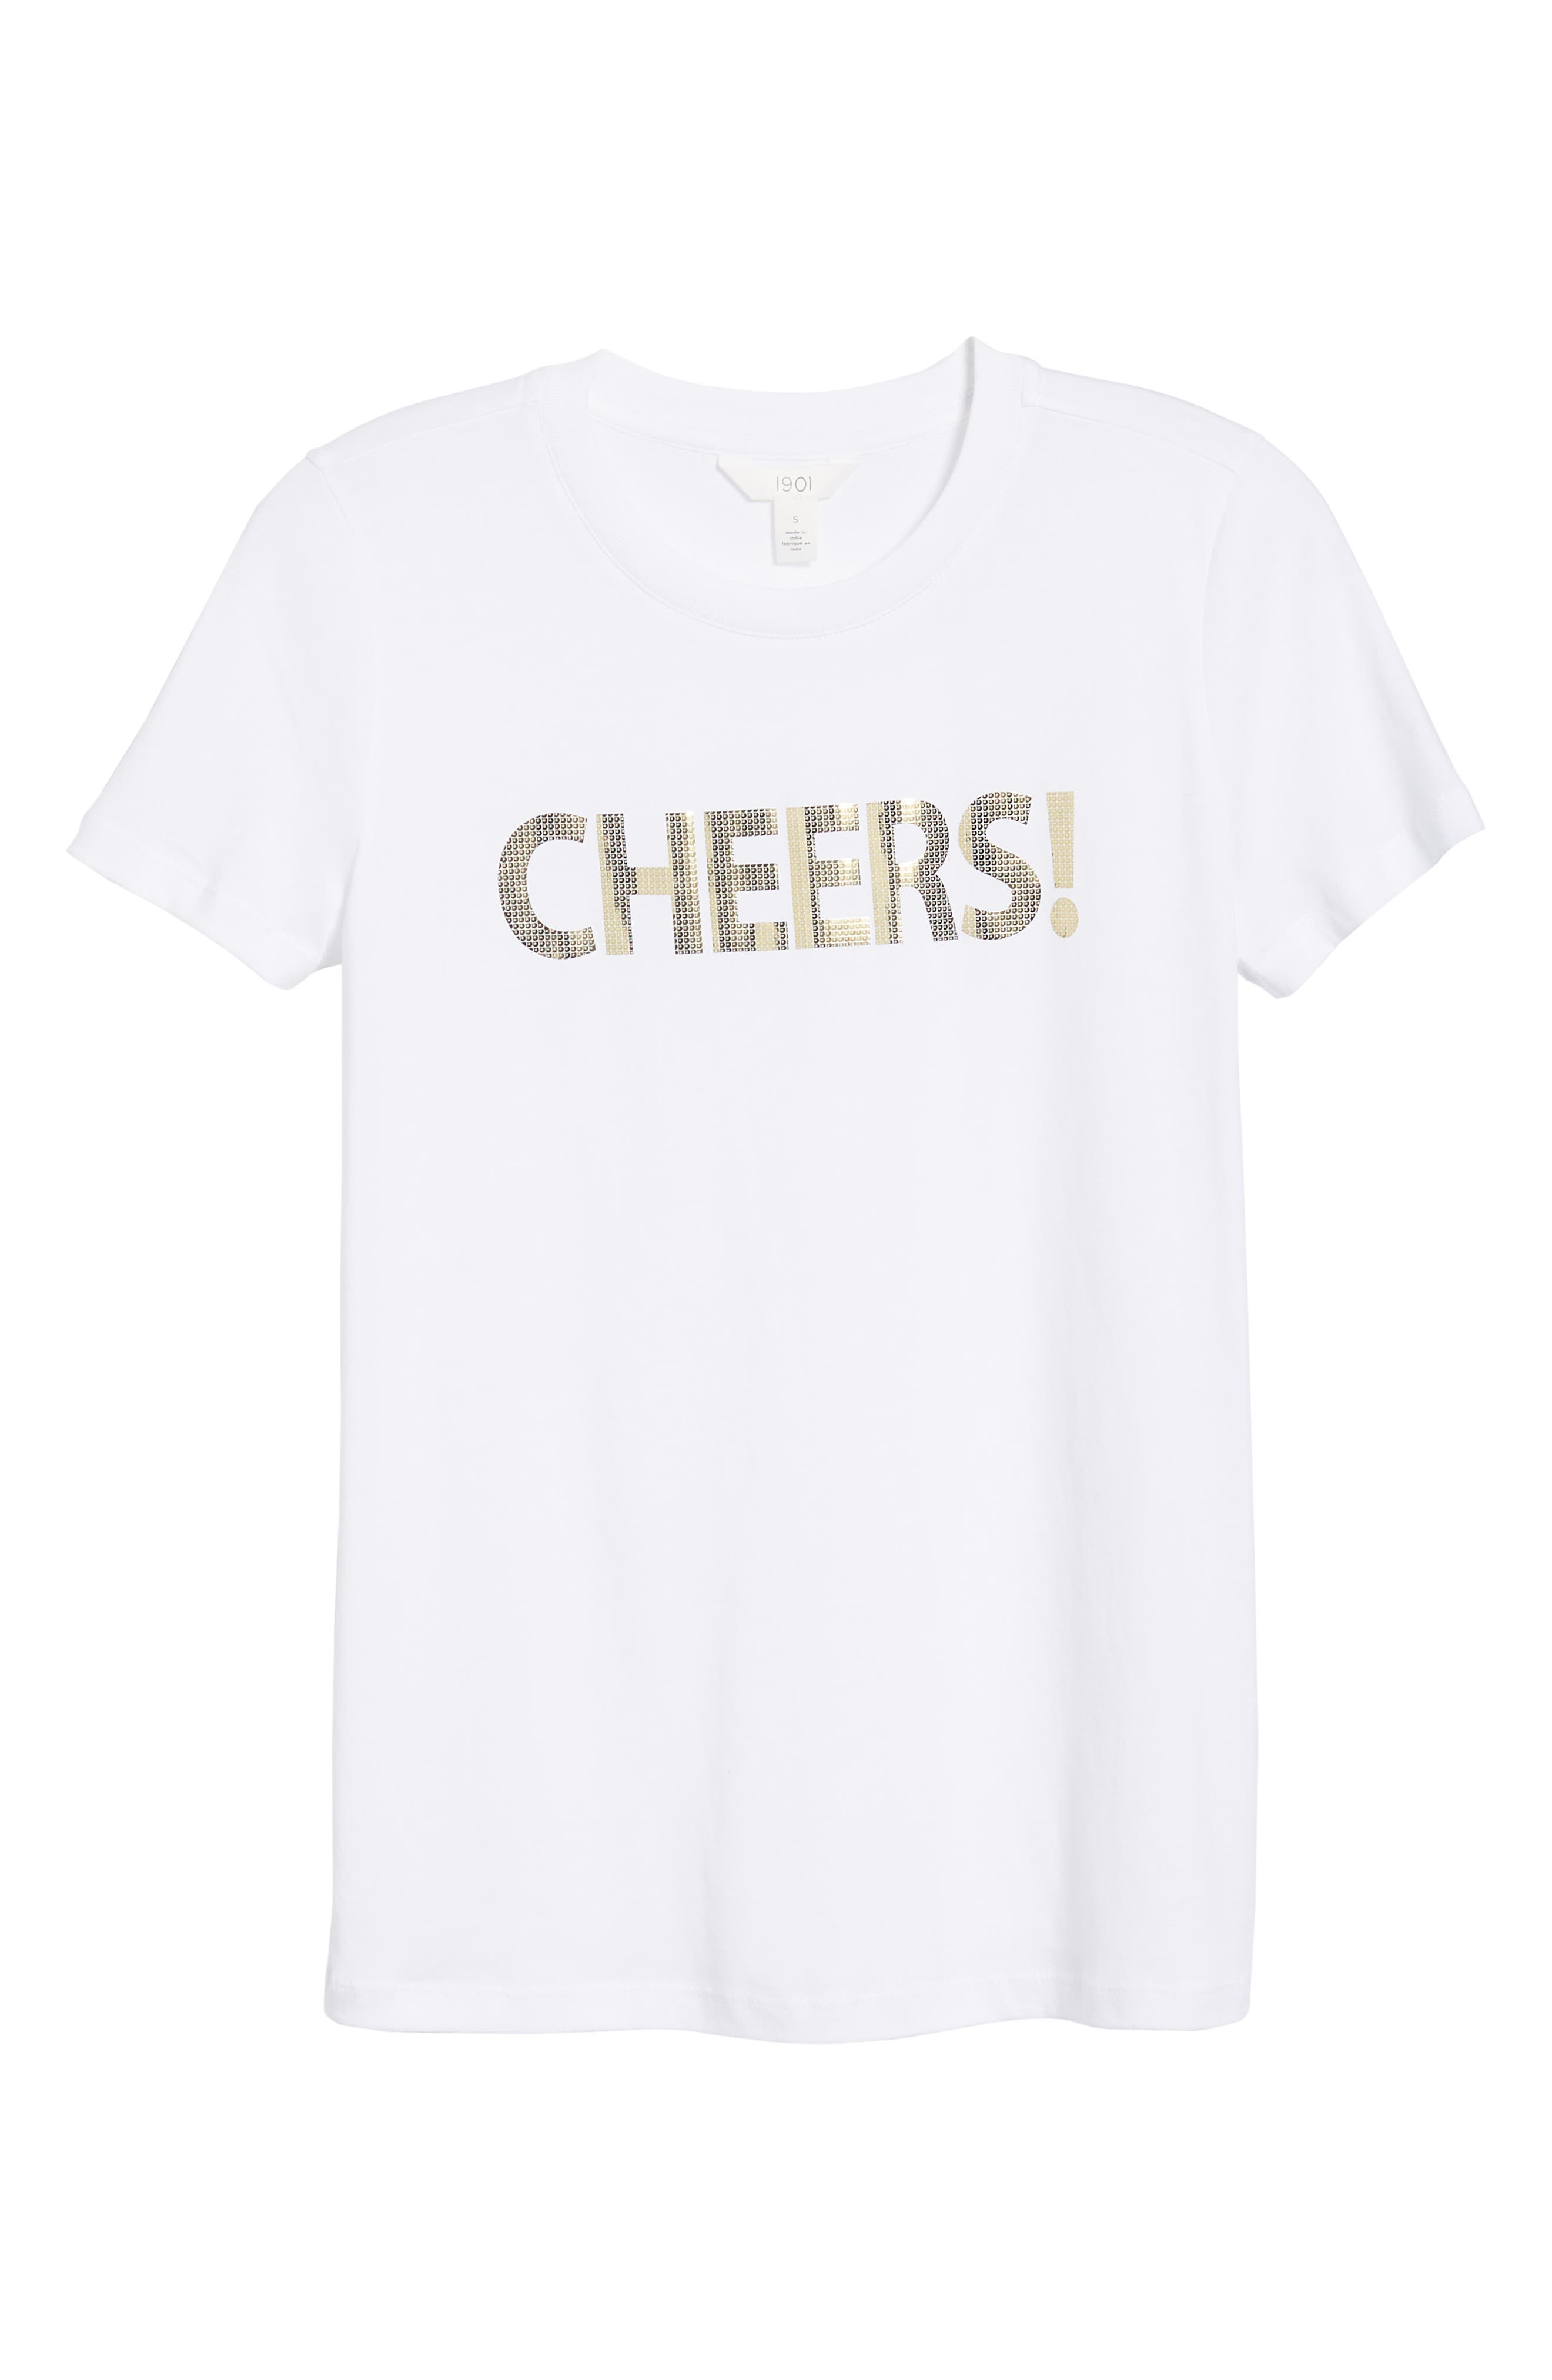 Short Sleeve Graphic Tee,                             Alternate thumbnail 6, color,                             WHITE- GOLD CHEERS